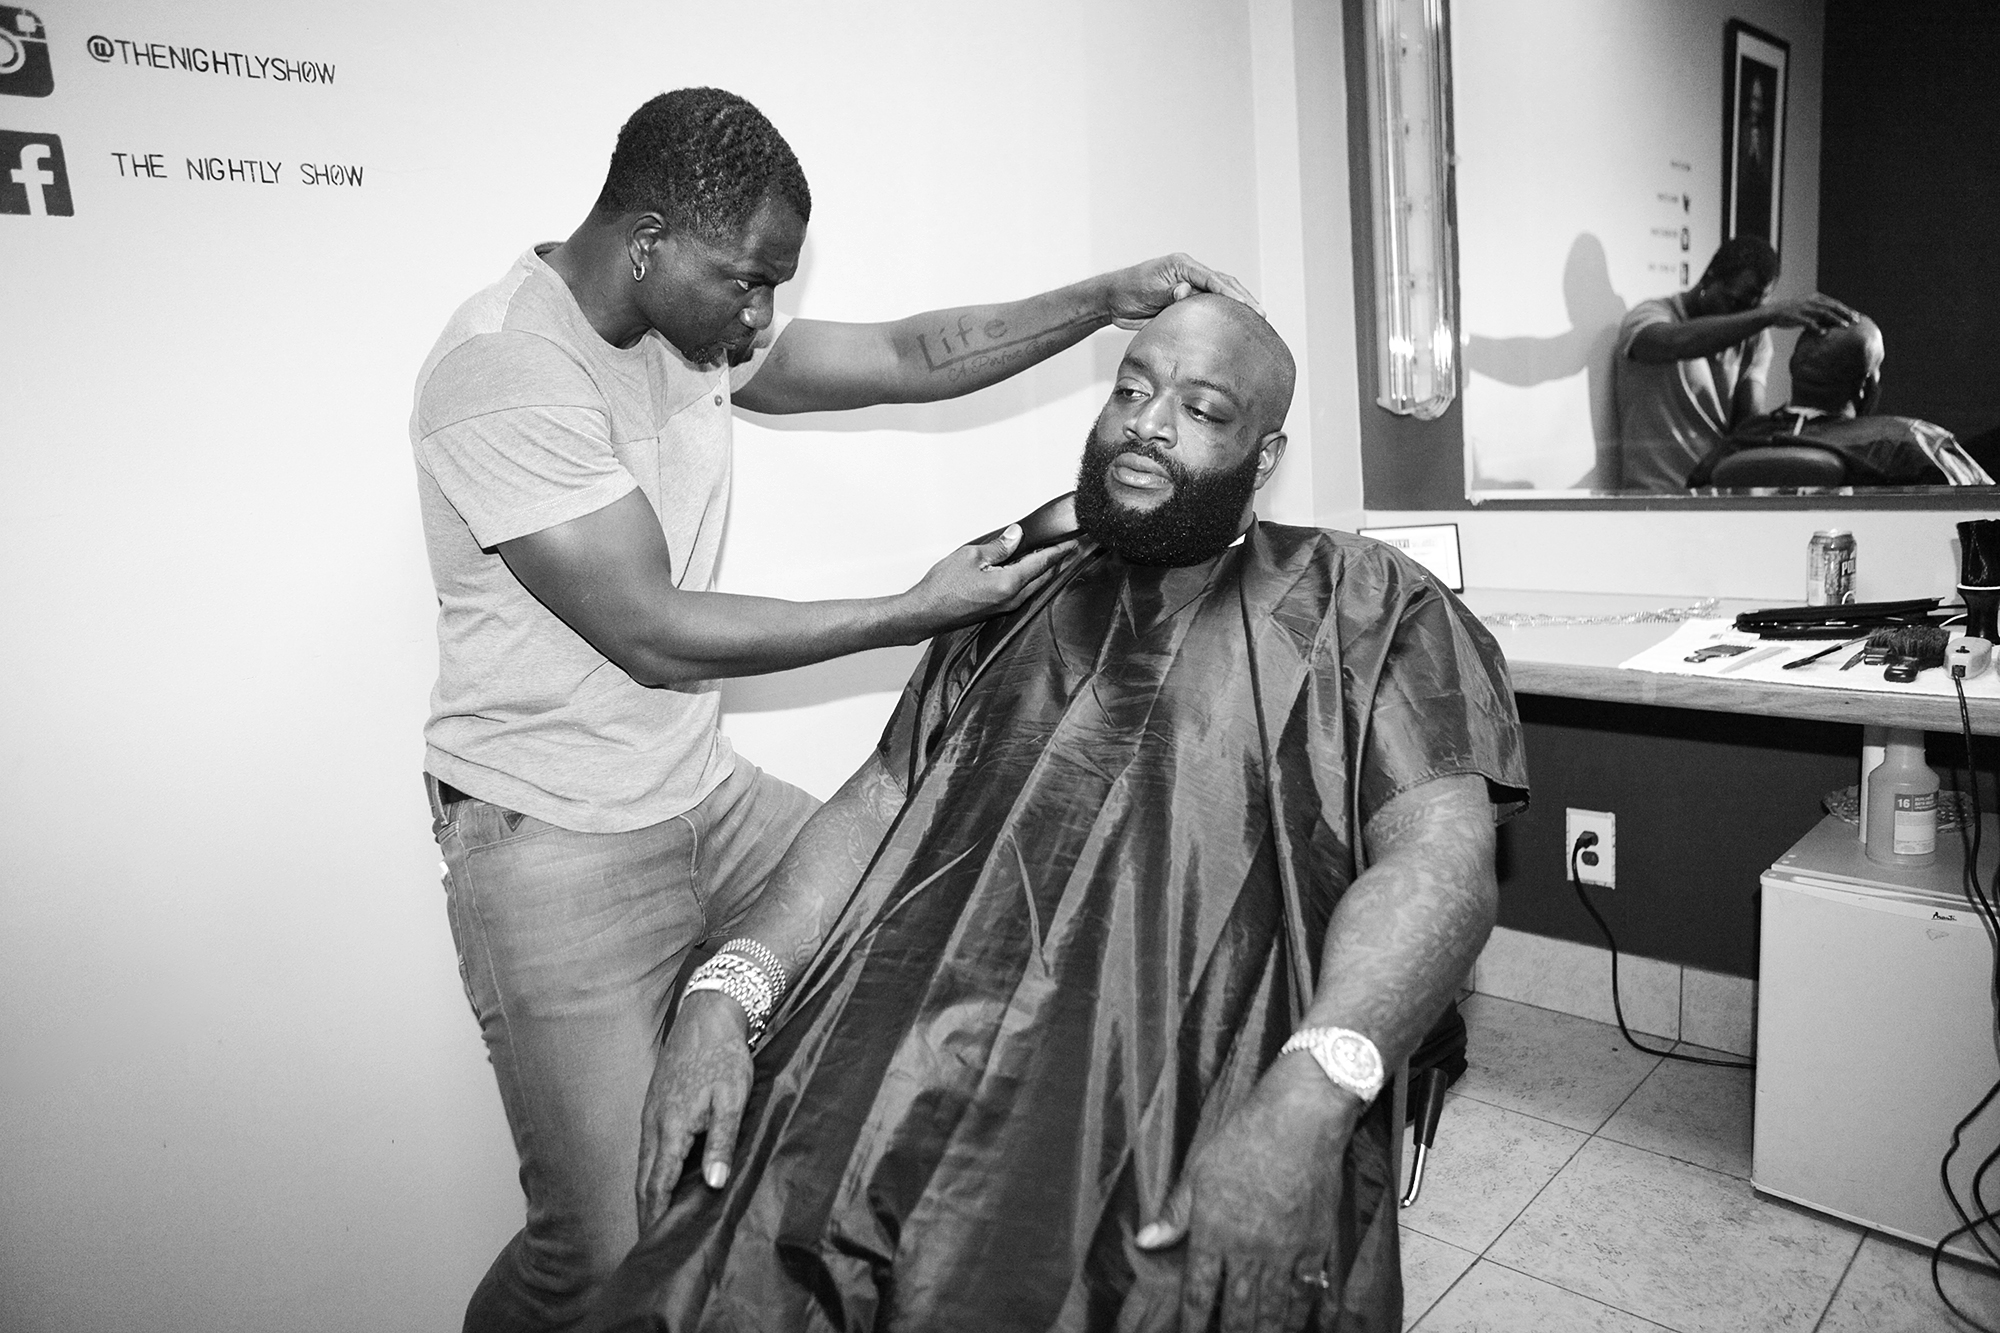 From left: Barber Peter Graham and Rick Ross backstage at The Nightly Show with Larry Wilmore on Nov. 12, 2015 in New York City.